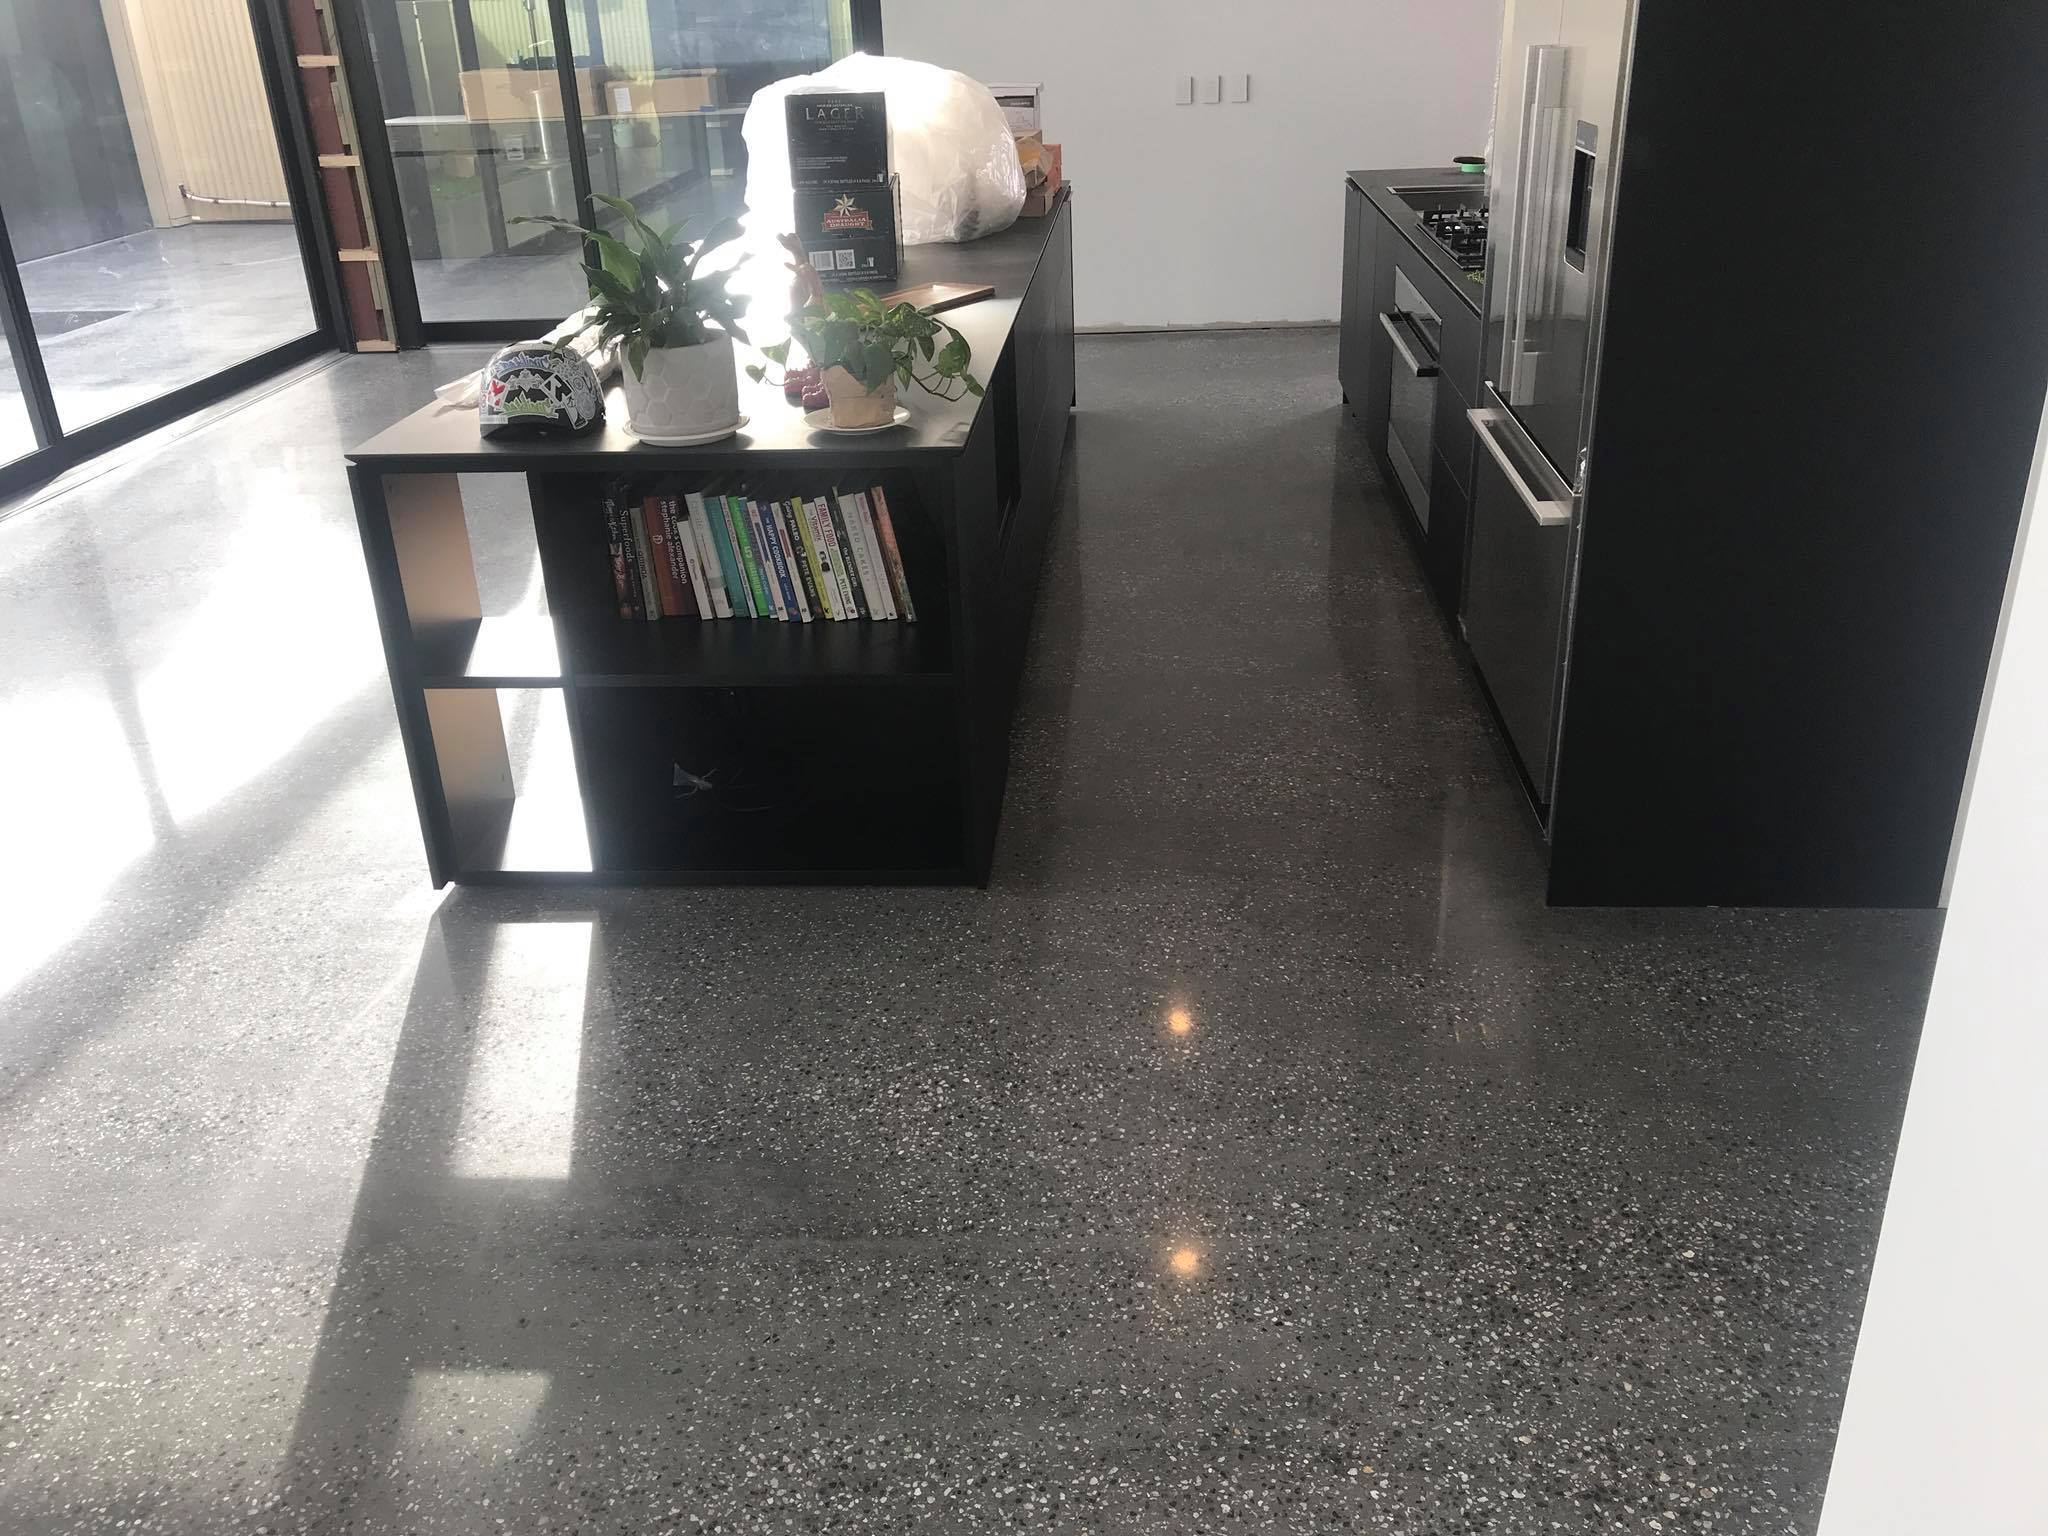 Salt & Pepper - A Salt & Pepper floor can come in a variety of ways:Bare minimal exposure - Just a bit of aggregate shows.Medium exposure - Not to heavy but not too lightHeavy Salt & Pepper - this is close to a full exposed floor but with a few variations.